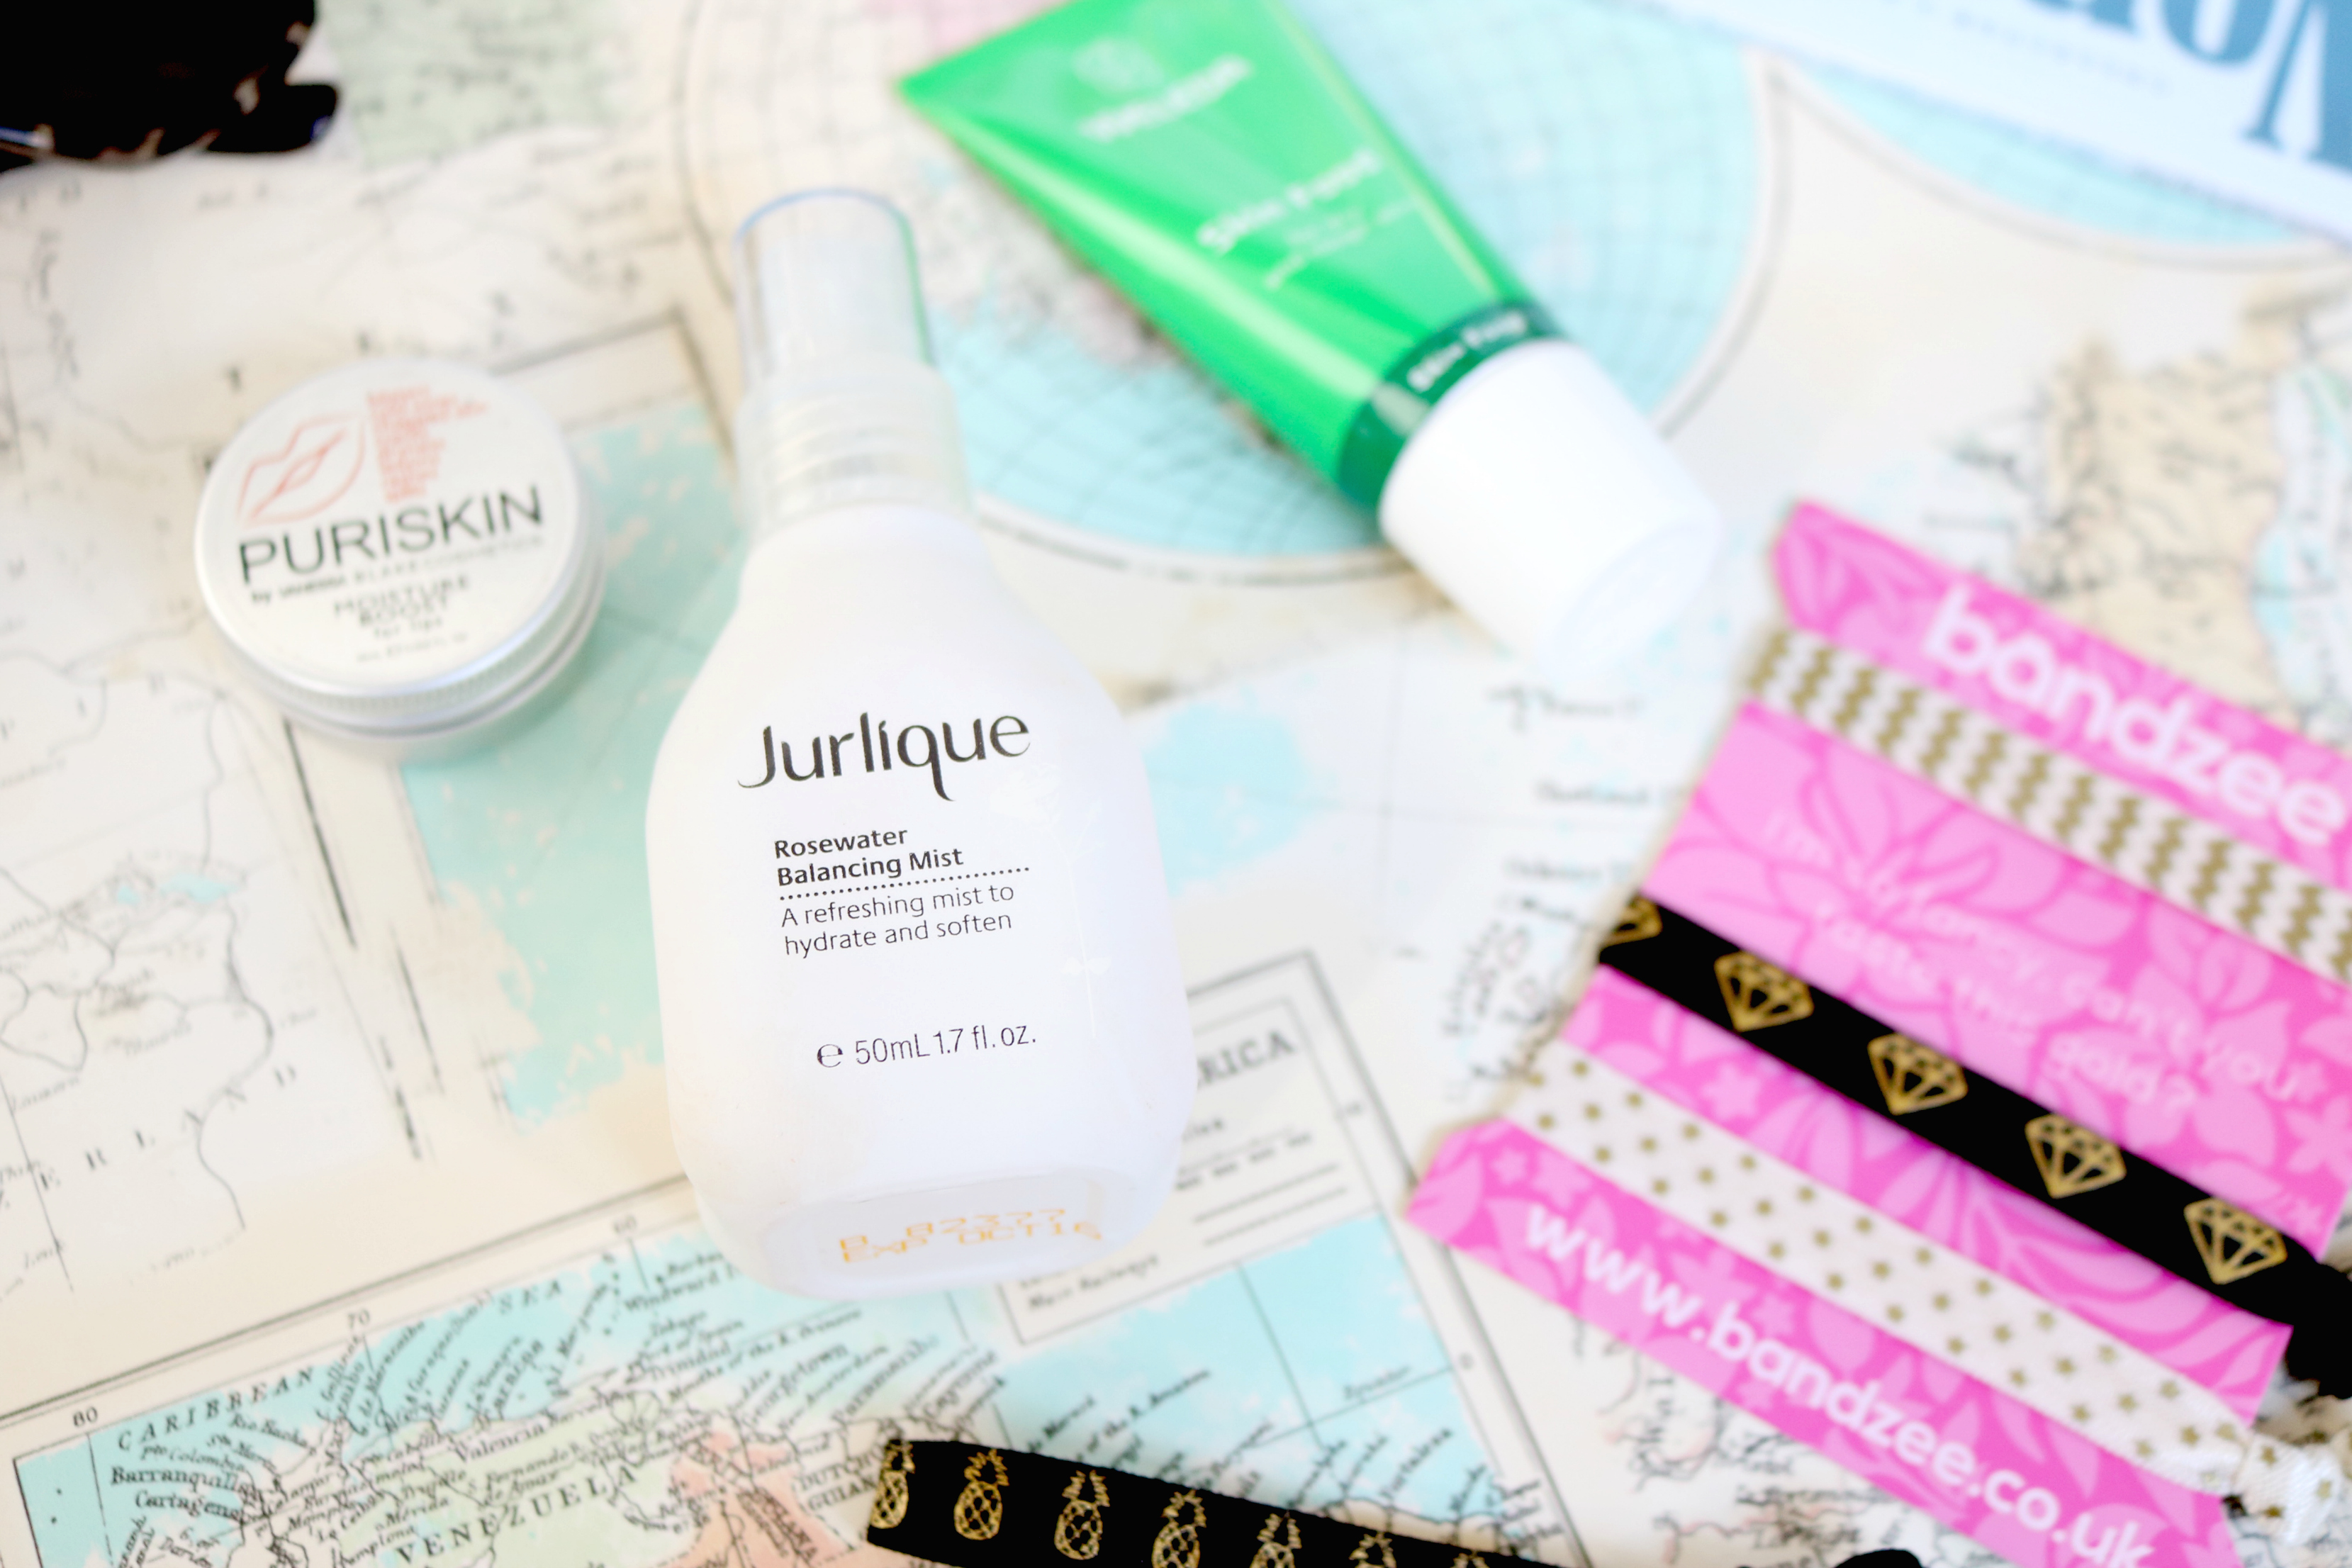 Jodetopia Commuter Essentials Bandzee Weleda Jurlique Puriskin